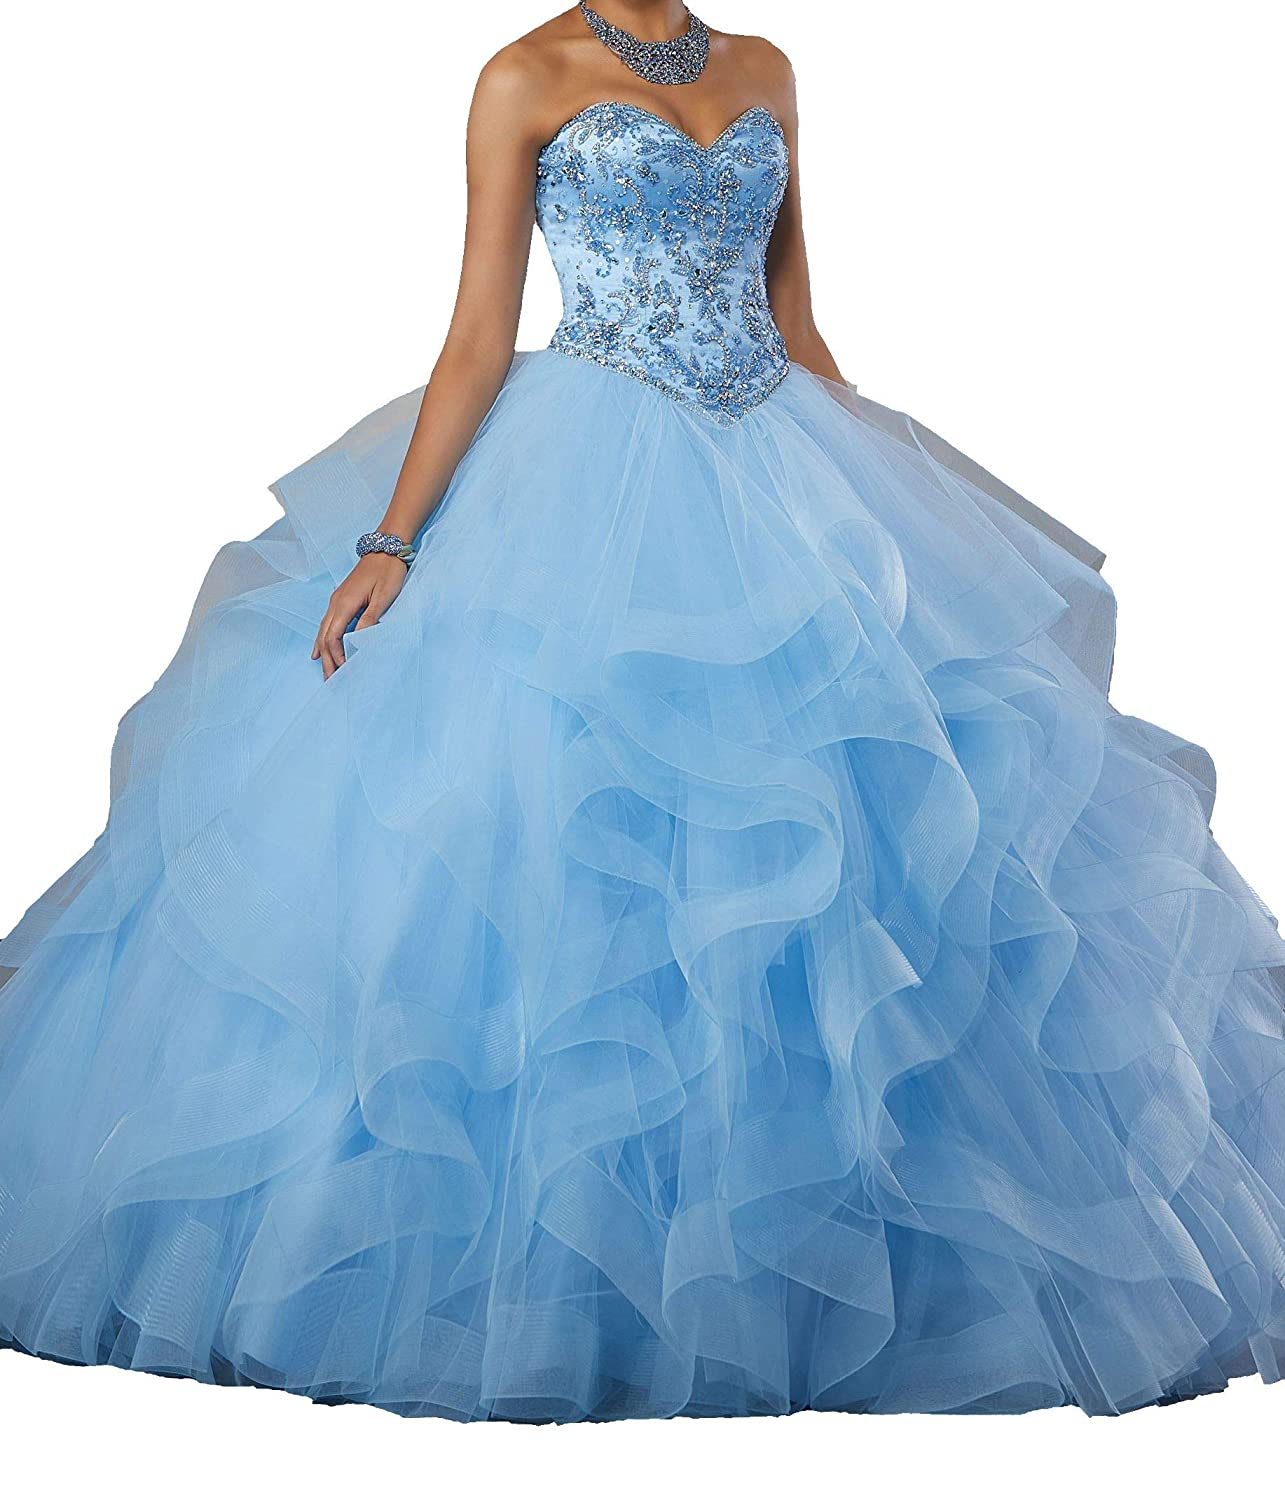 90a4b83098 Dengfeng Women s Sweetheart Beaded Ruffled Lady Party DanceSweet 15  Quinceanera Dresses at Amazon Women s Clothing store